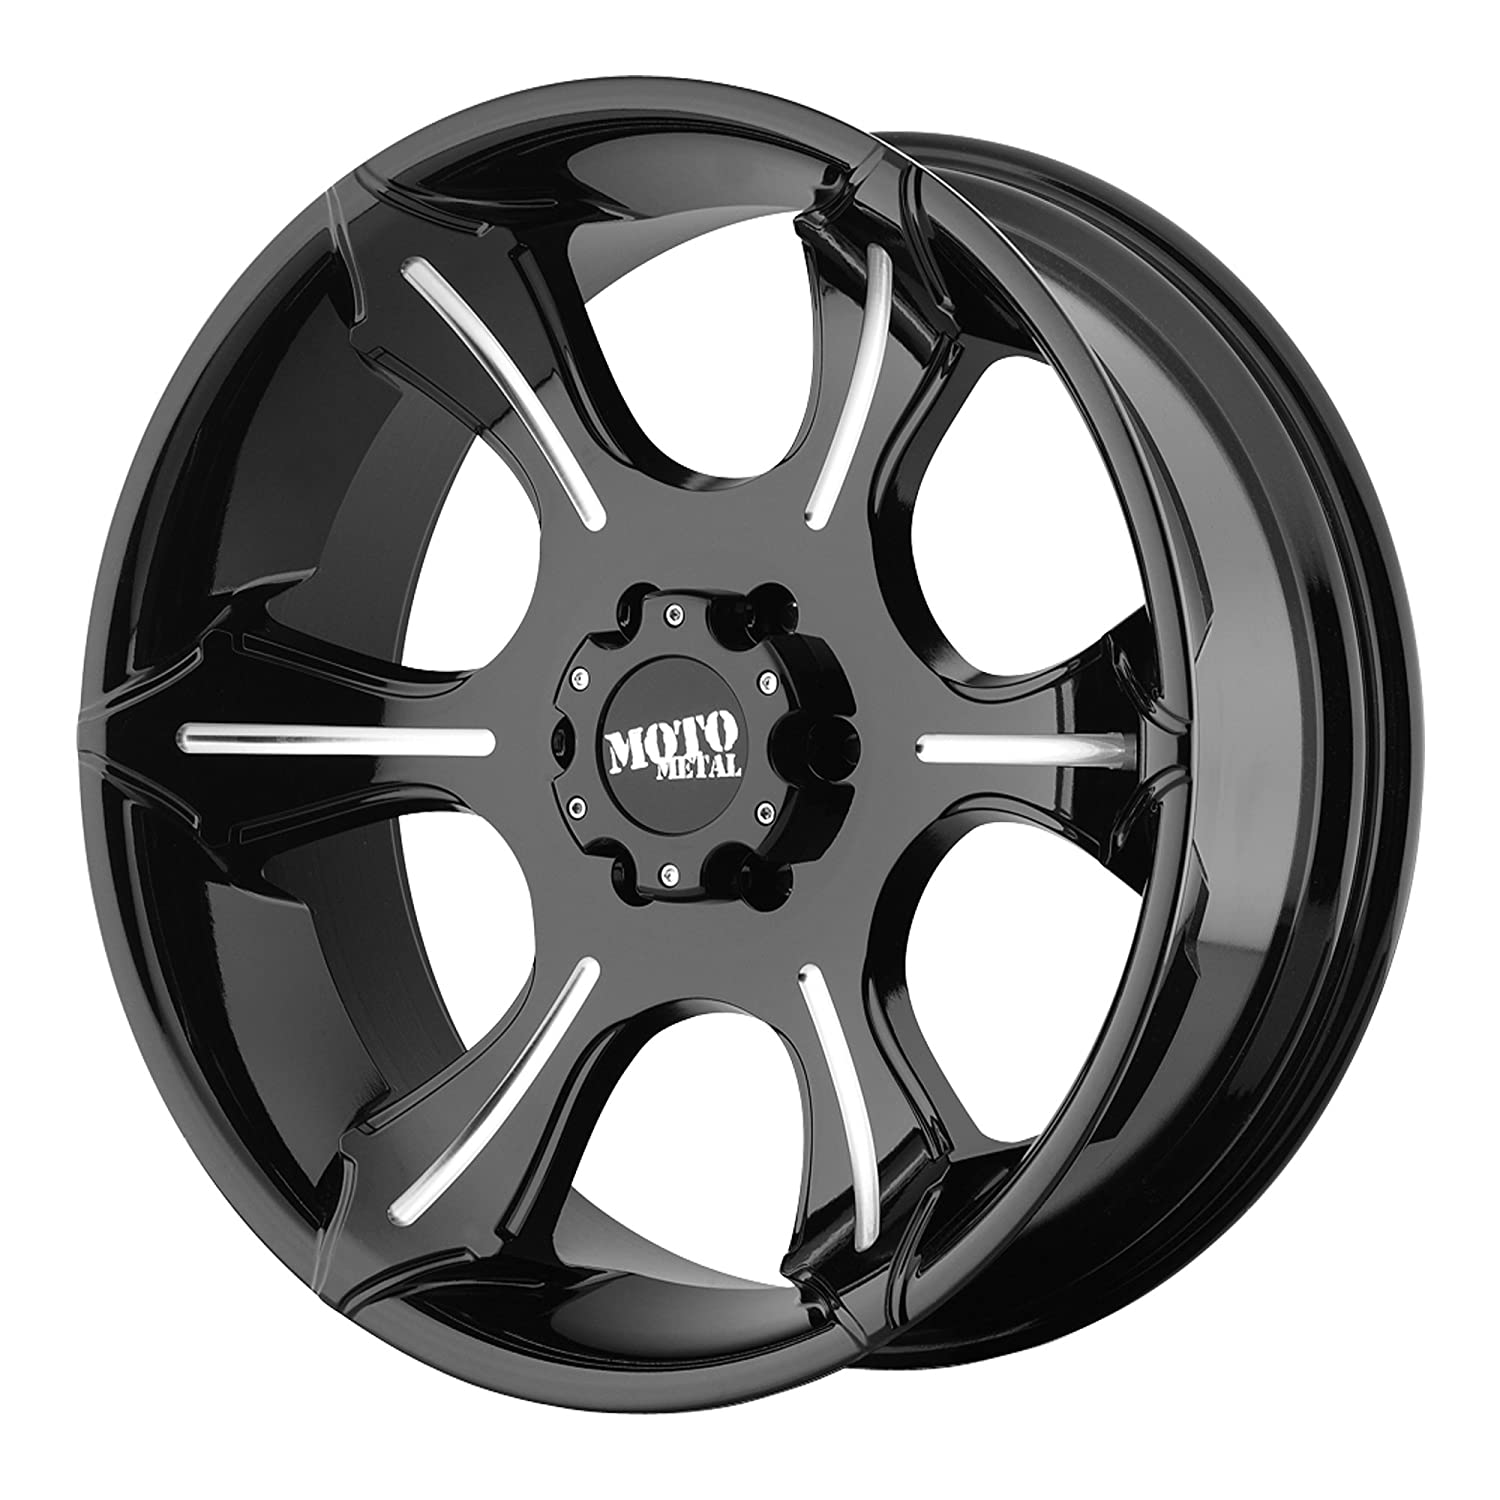 Moto Metal MO963 Matte Black Dually Outer Wheel With Machined Accents 17x6//8x165.1mm, +111mm offset